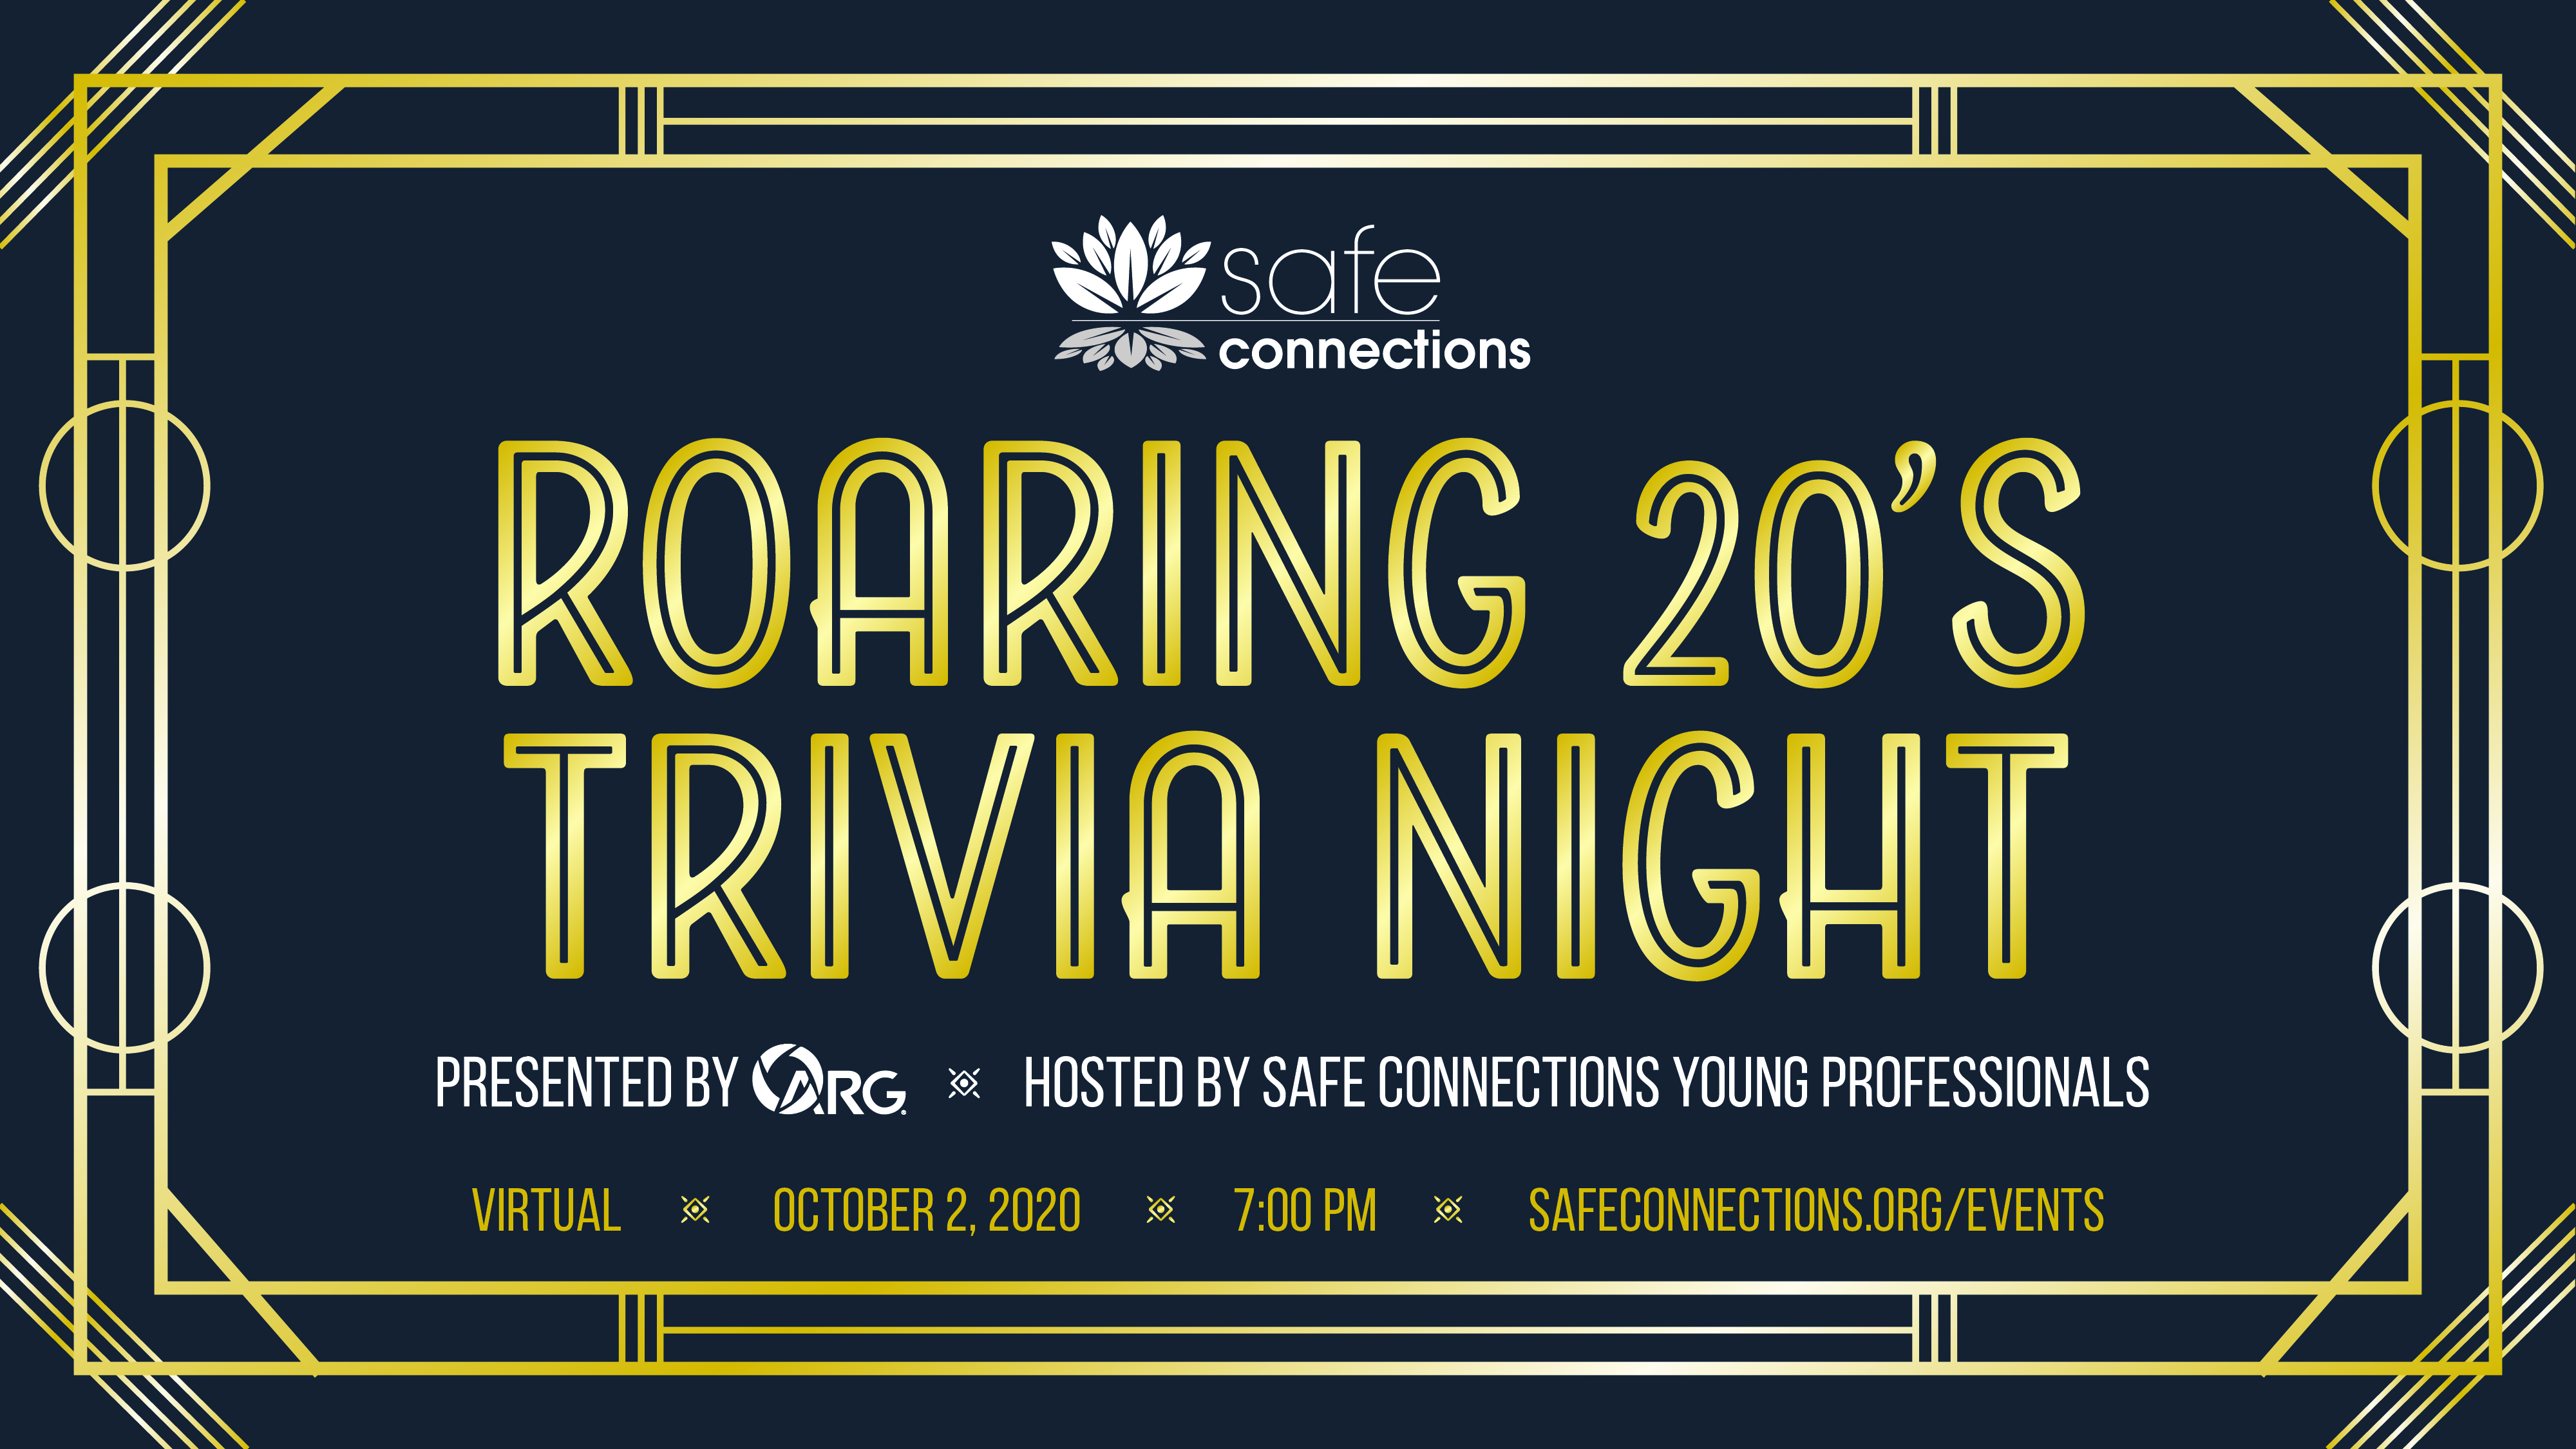 Trivia Night with Safe Connections YPs